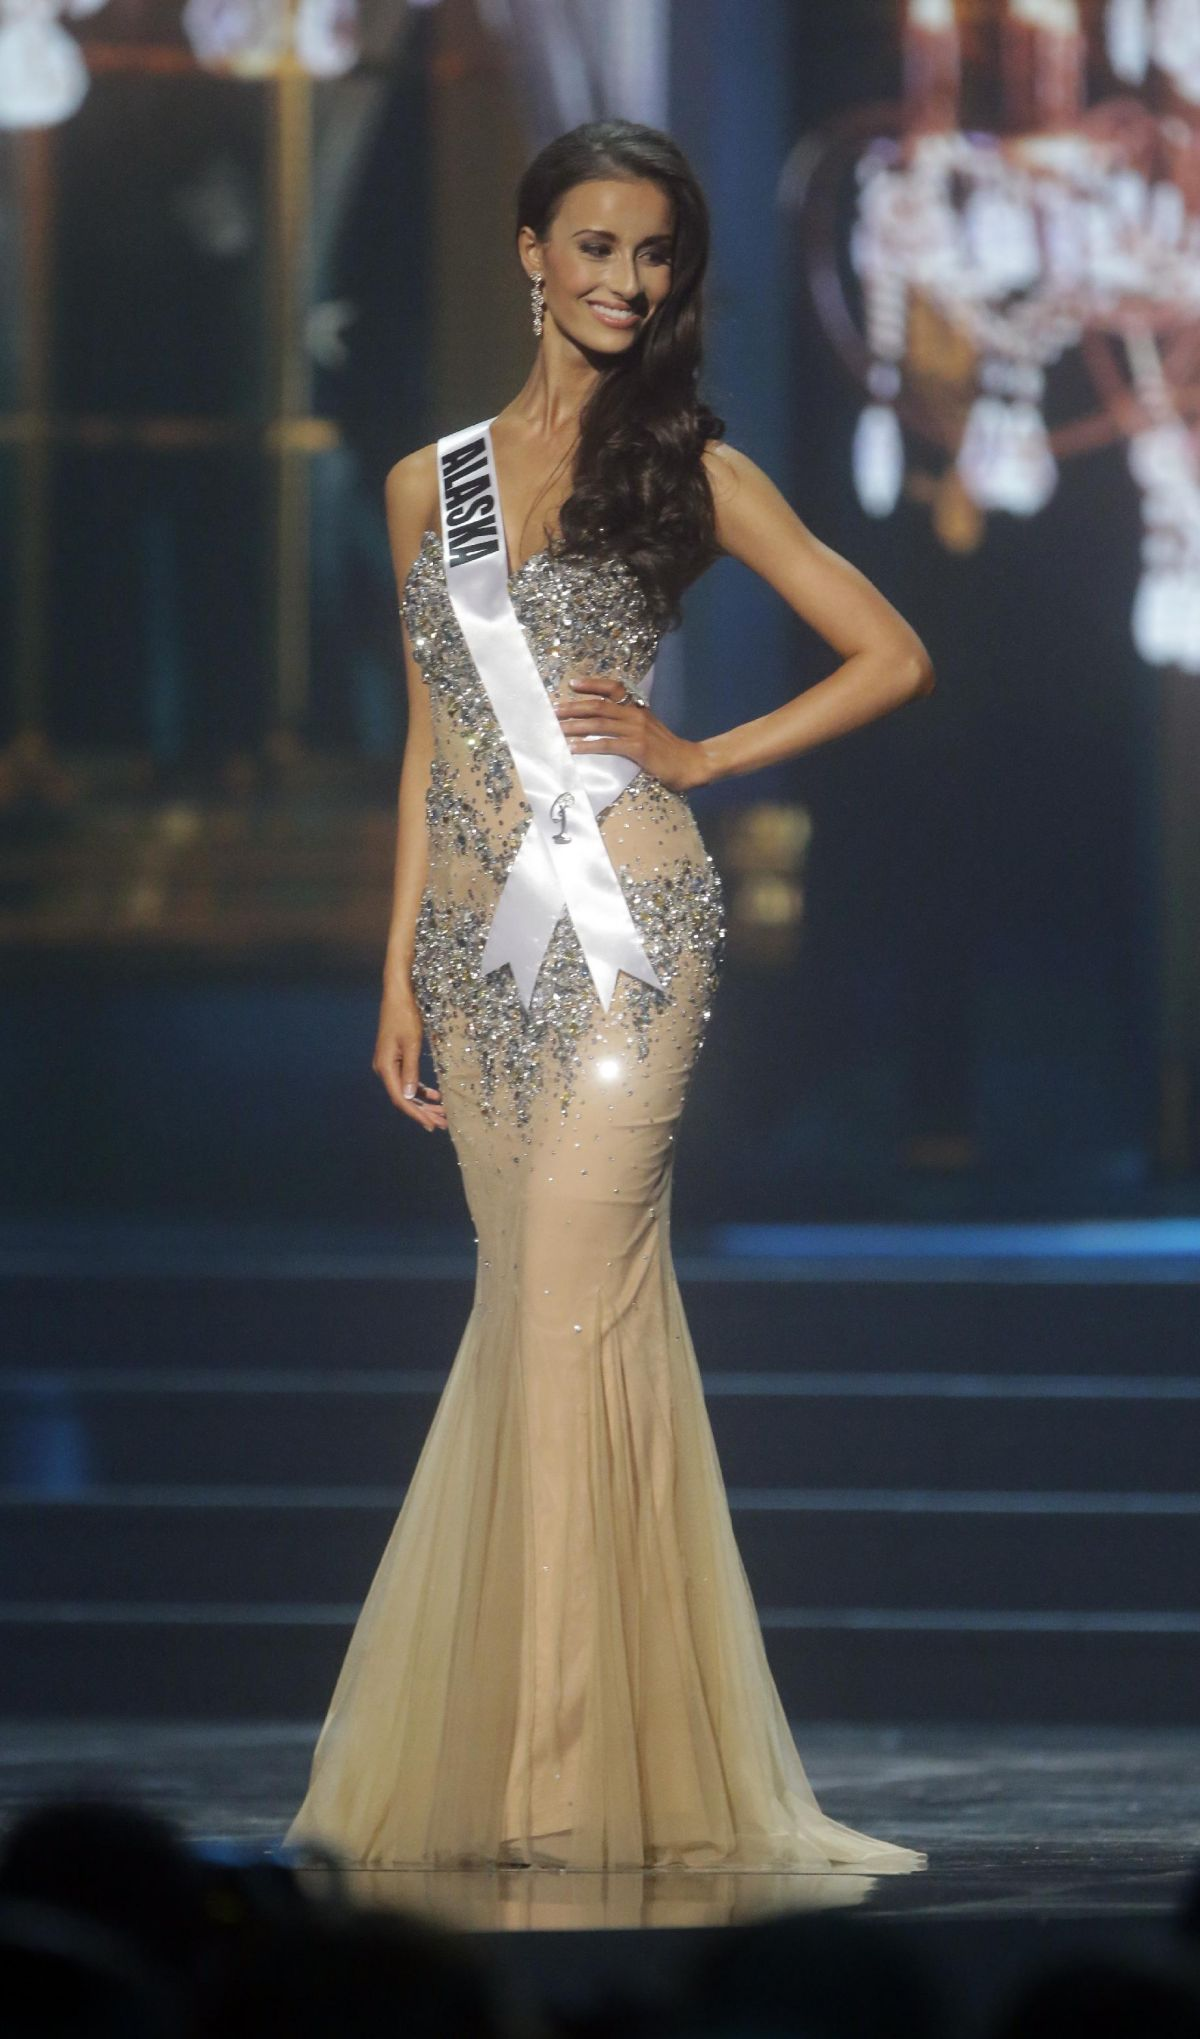 KENDALL BAUTISTA at Miss USA 2014 Preliminary Competition